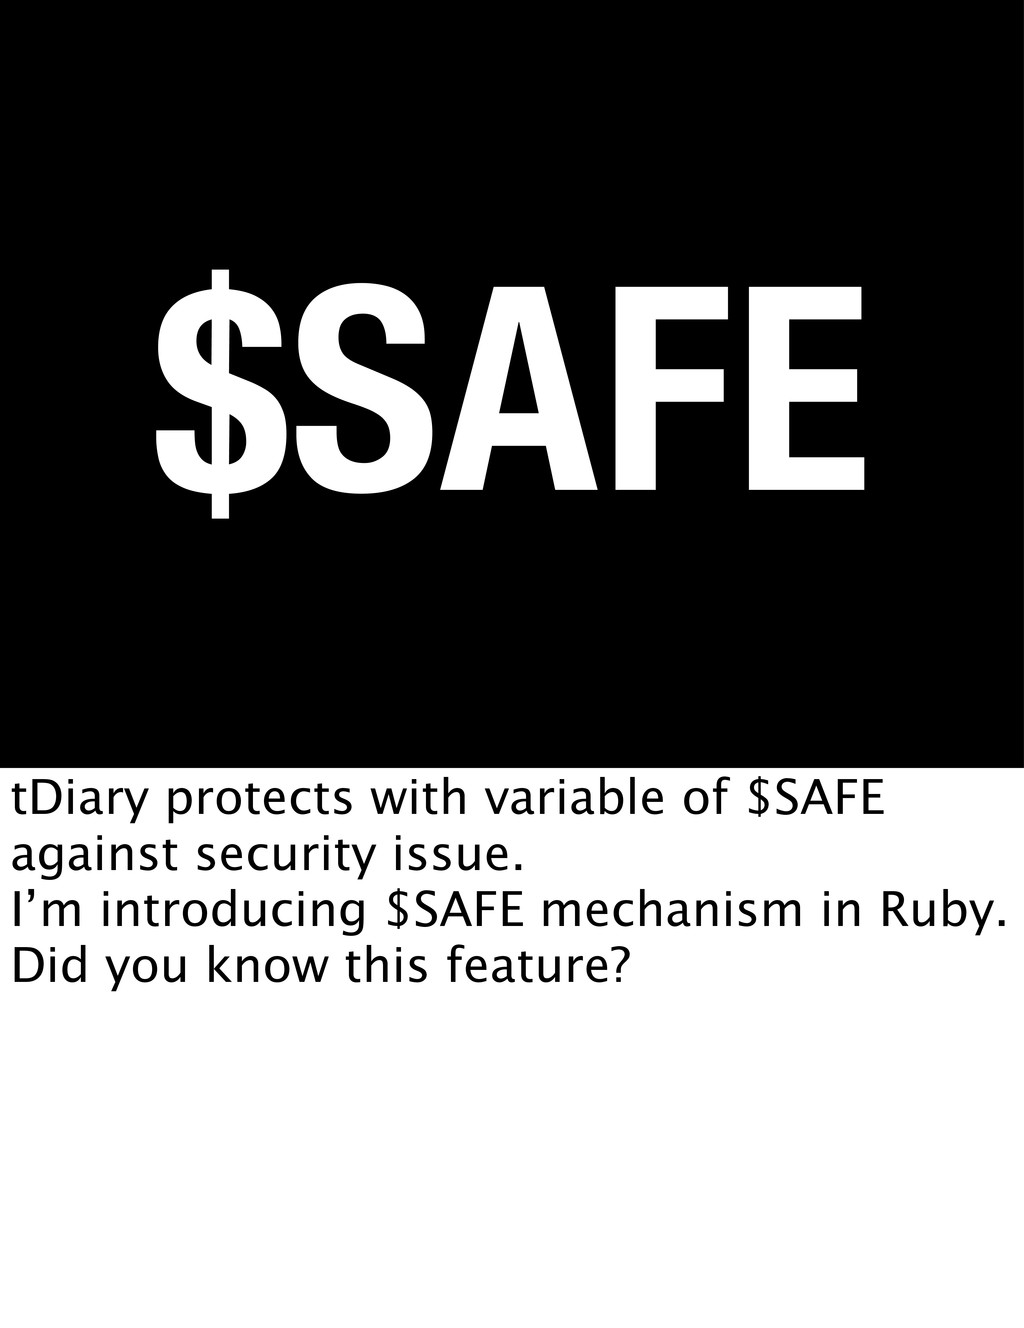 $SAFE tDiary protects with variable of $SAFE ag...